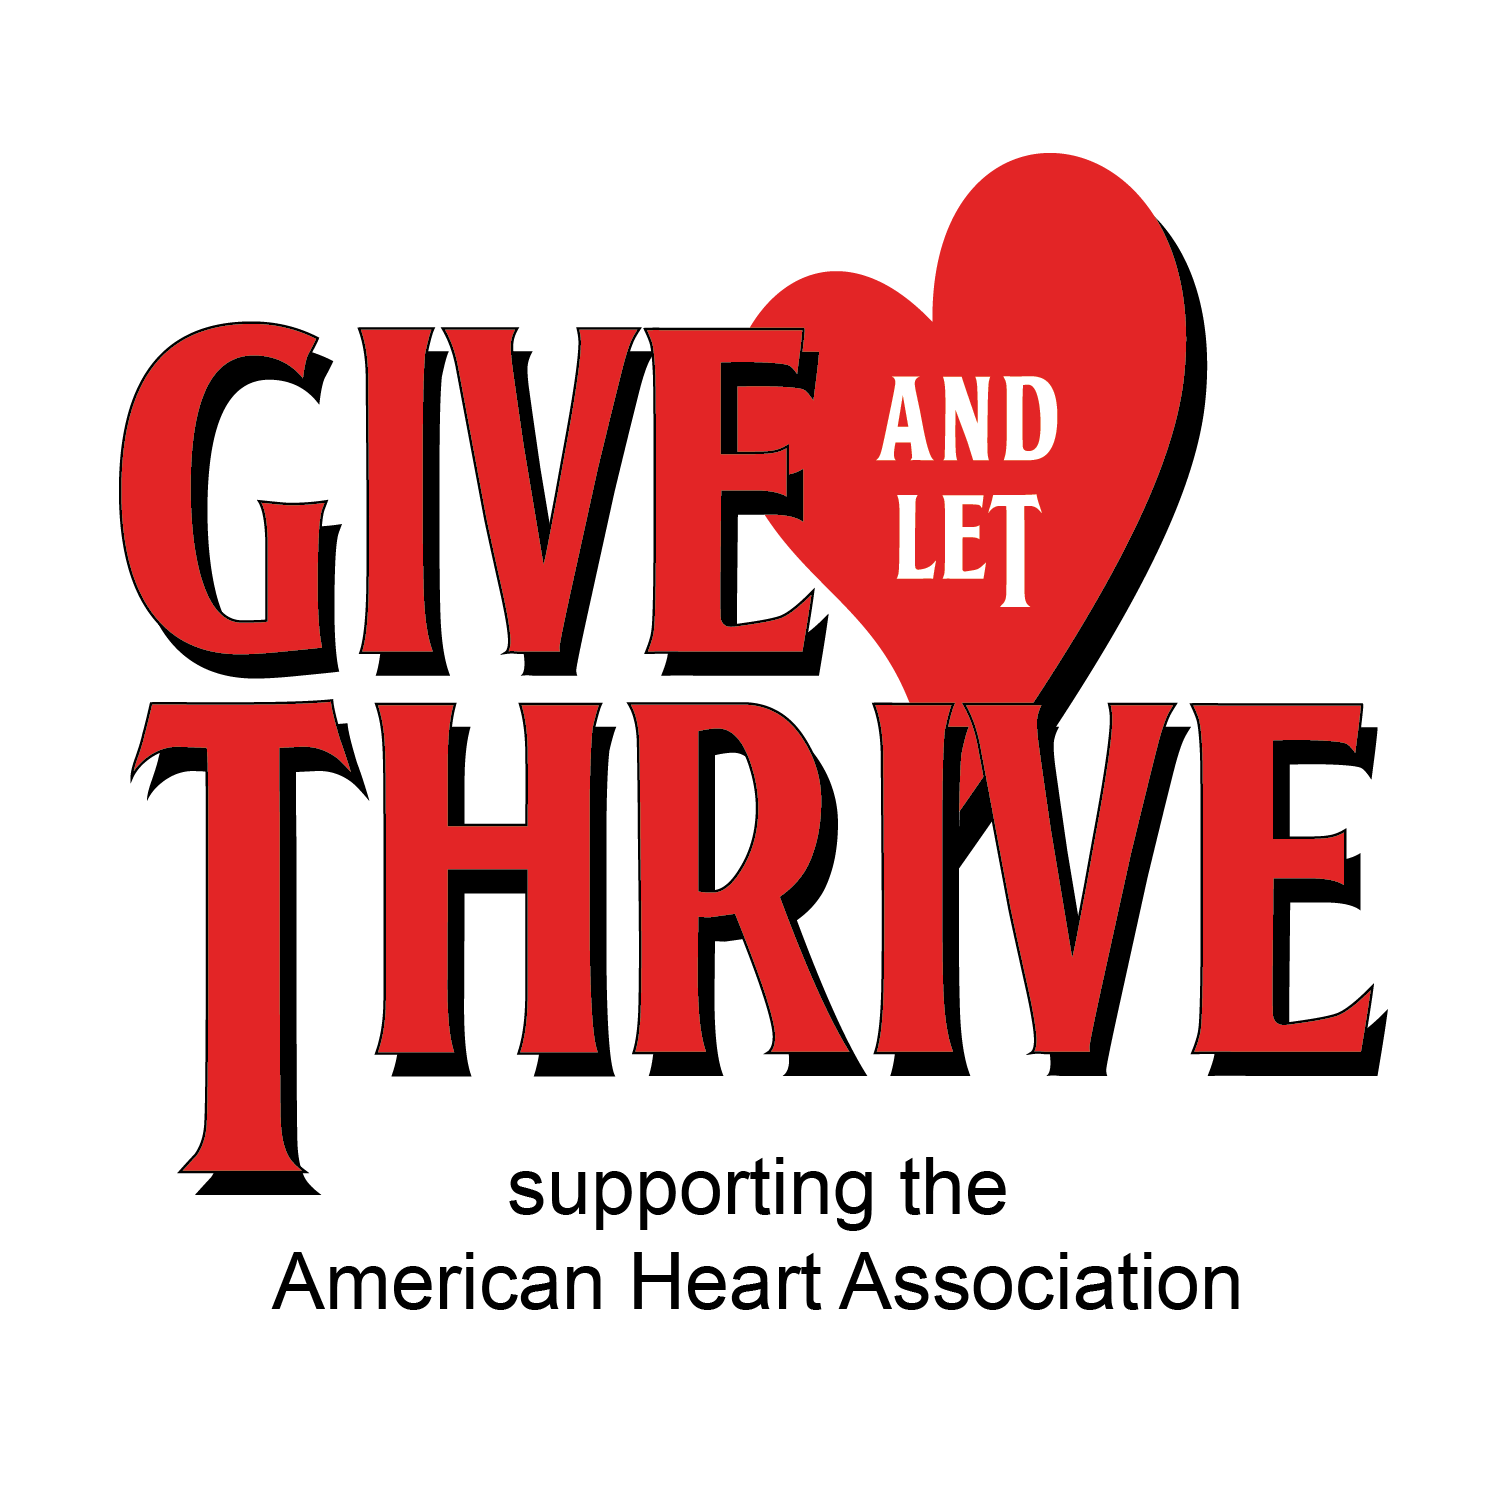 Give and Let Thrive